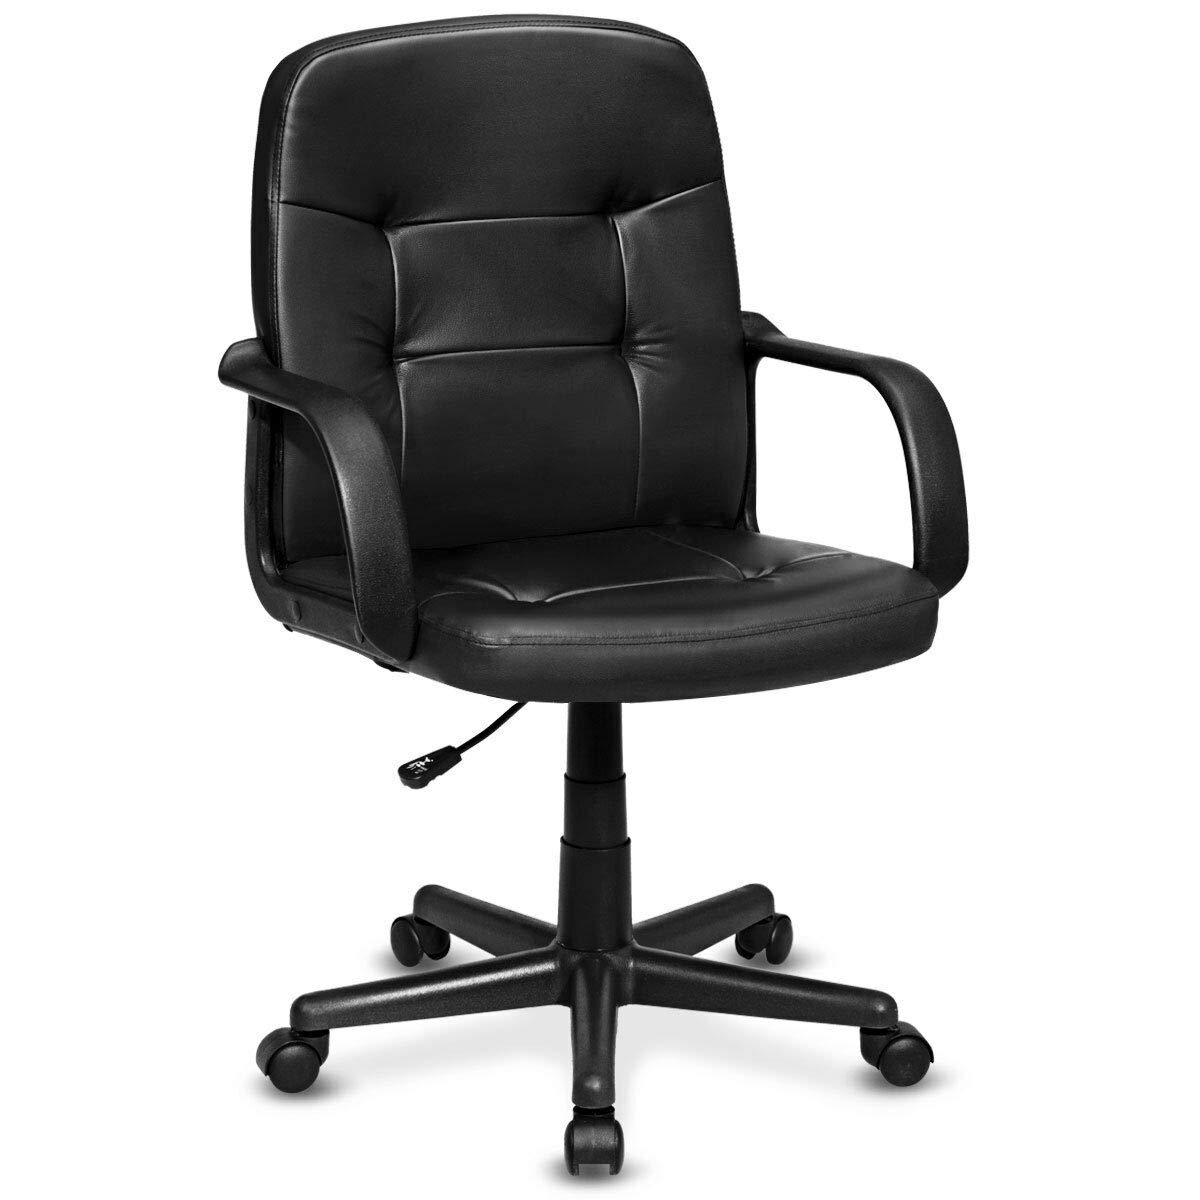 Giantex Mid Back Office Chair Ergonomic PU Leather Swivel Computer Desk Task Chair with Arms and Swivel Wheels for Home Office Use, Black